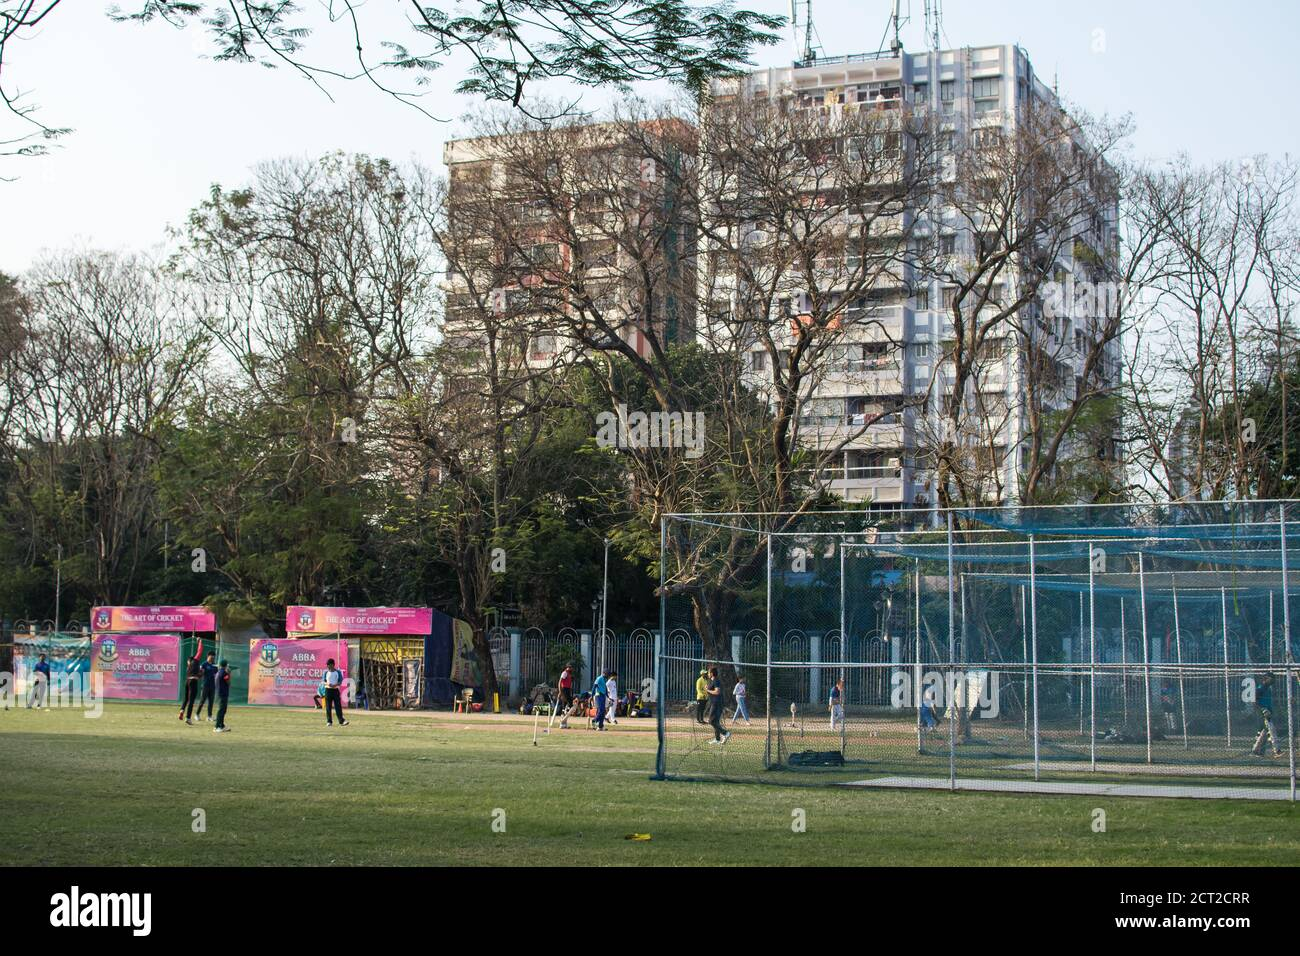 Kolkata, India - February 1, 2020: Several unidentified people plays cricket in everyday clothes in Minhaj Gardan park on February 1, 2020 in Kolkata Stock Photo